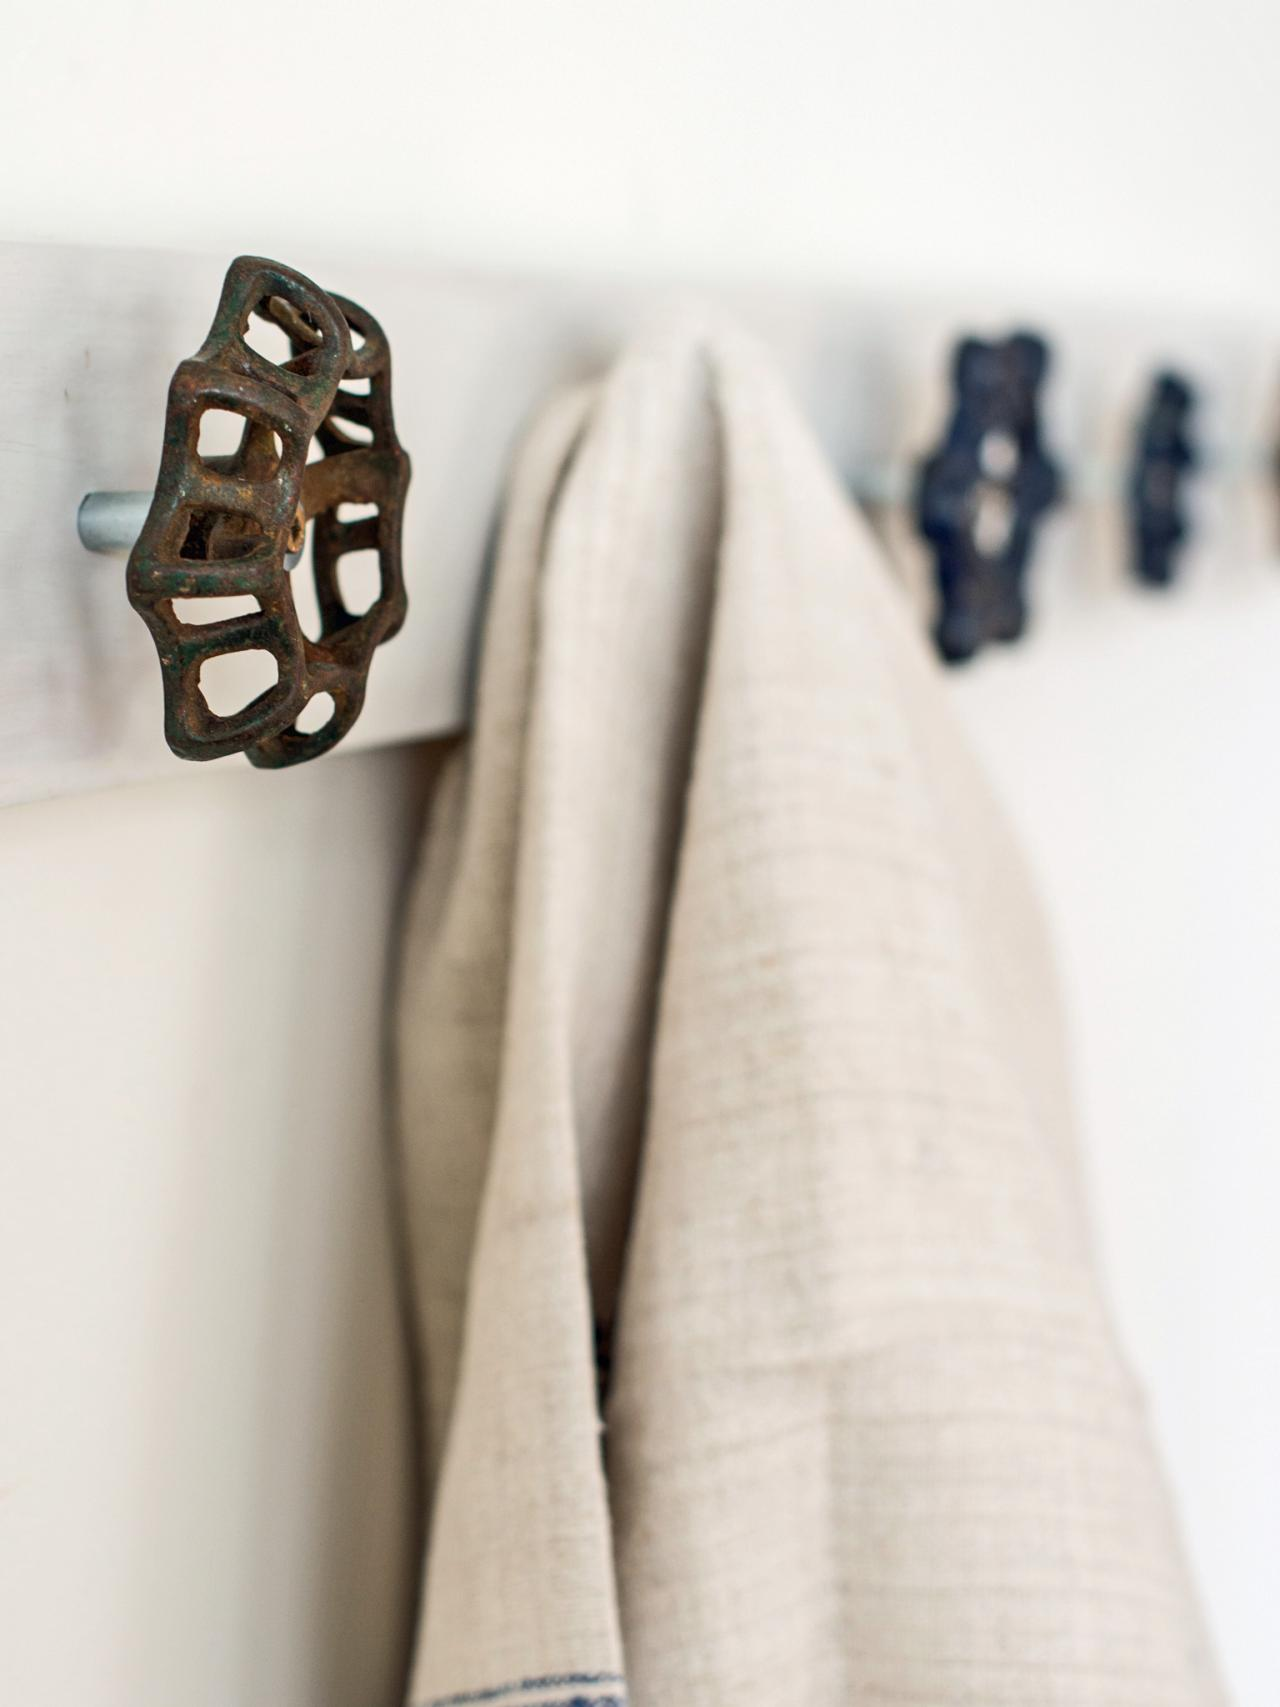 Upcycle Vintage Spigot Handles Into a Trendy Towel Rack | HGTV